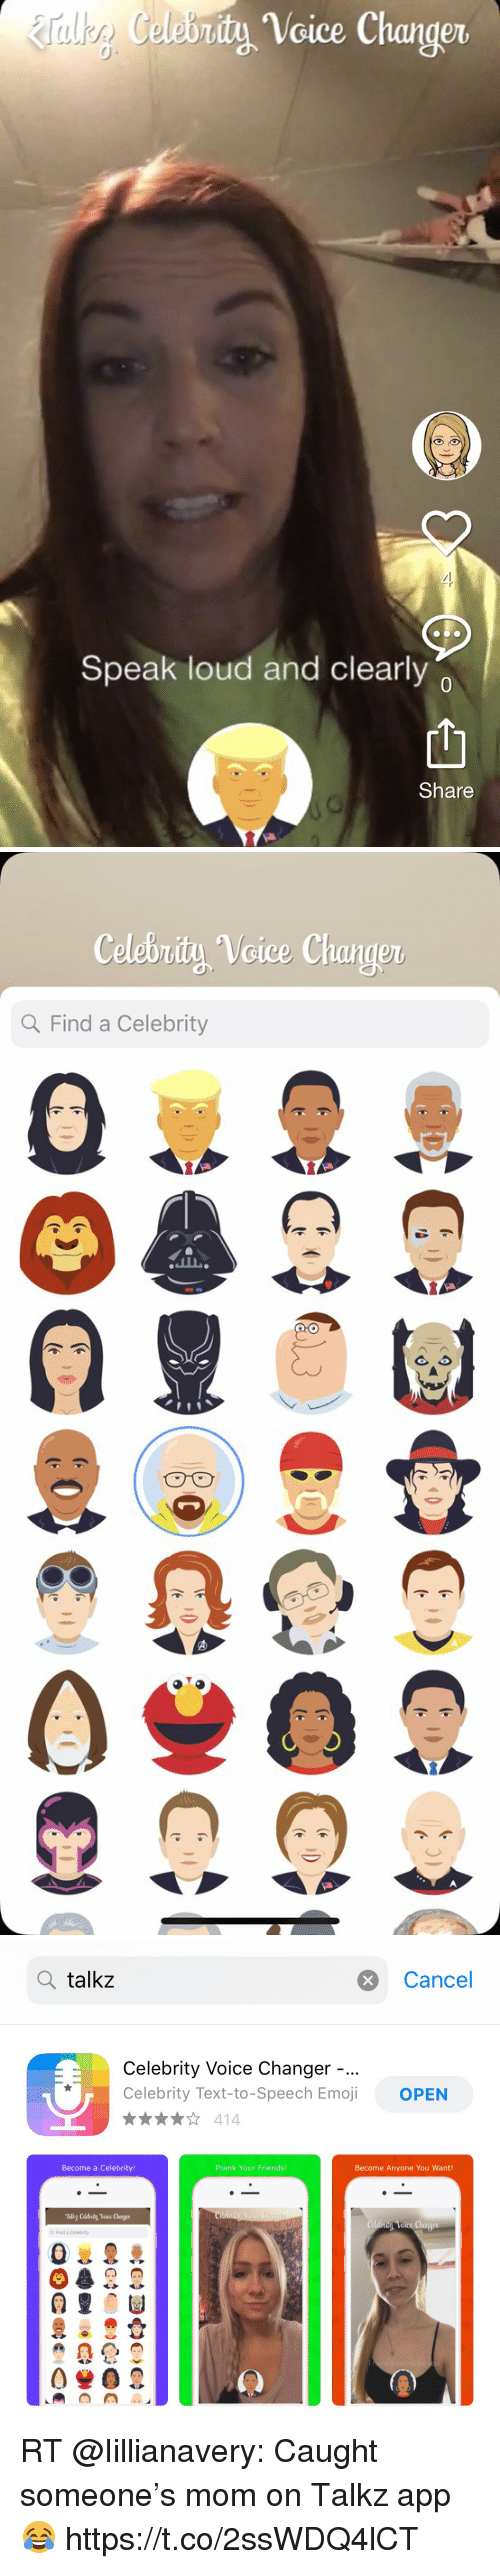 Trump Voice Changer - Celebrity Text to Speech for iOS ...